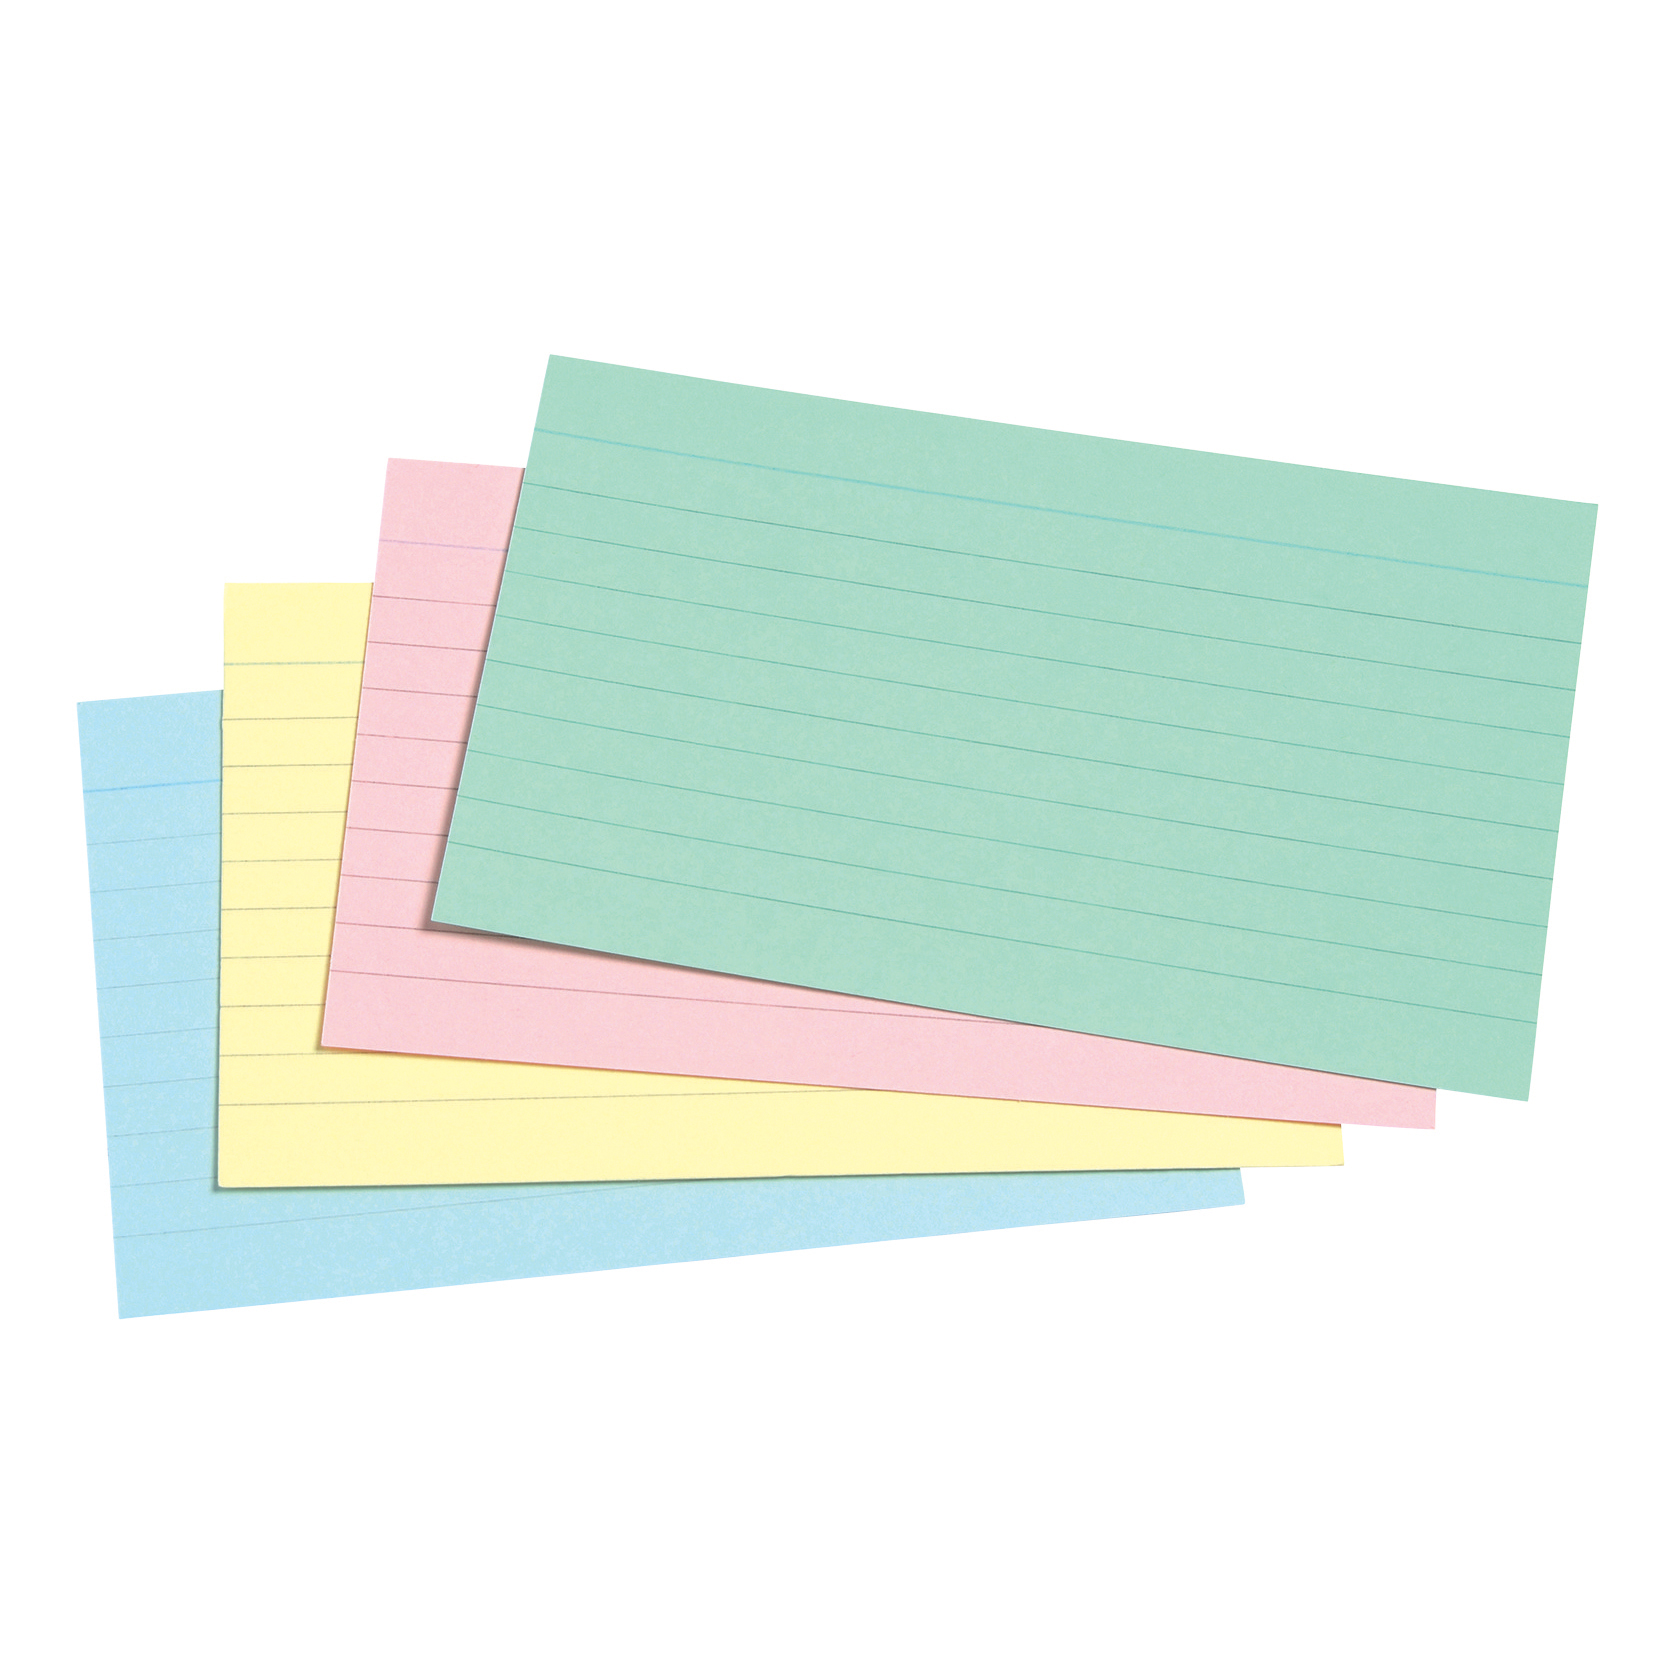 5 Star Office Record Cards Ruled Both Sides 5x3in 127x76mm Assorted Pack 100